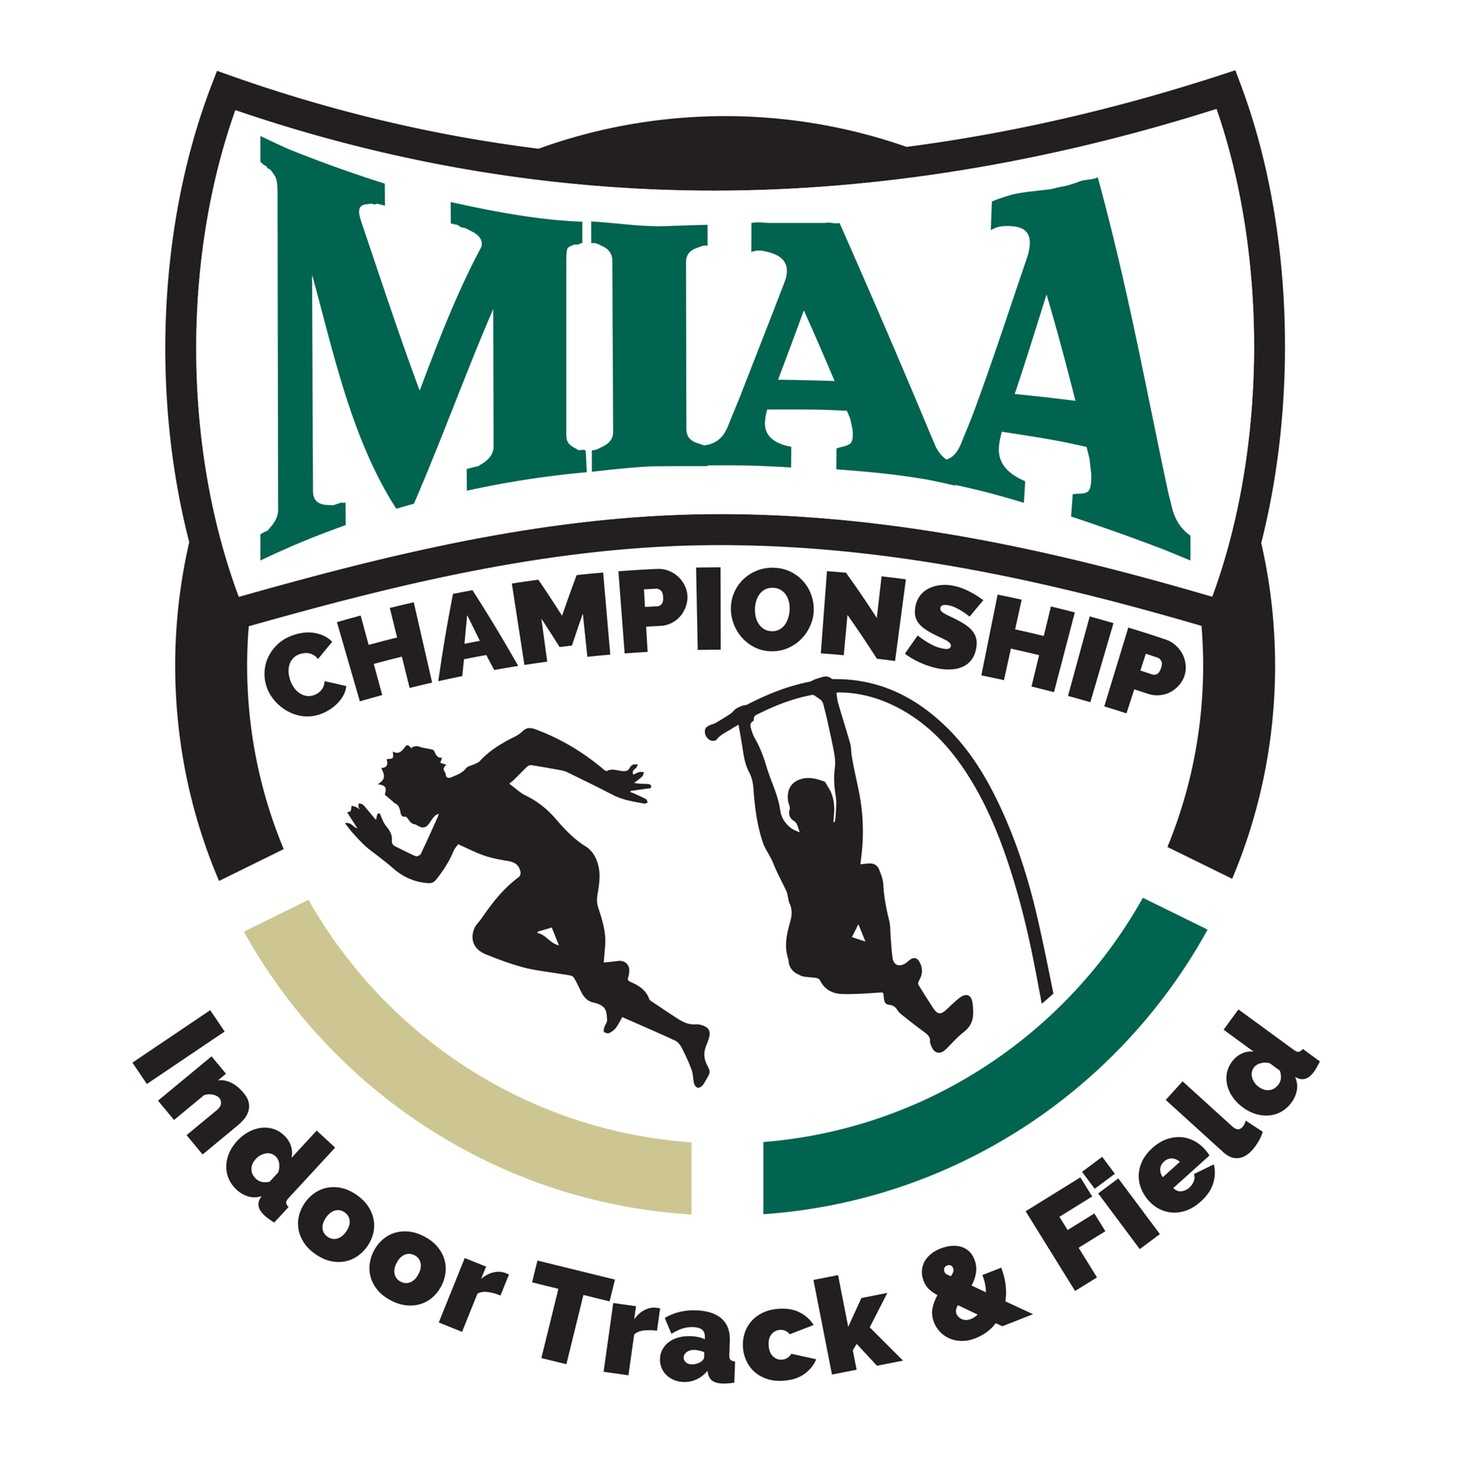 MIAA track and field green, black and gold championship logo